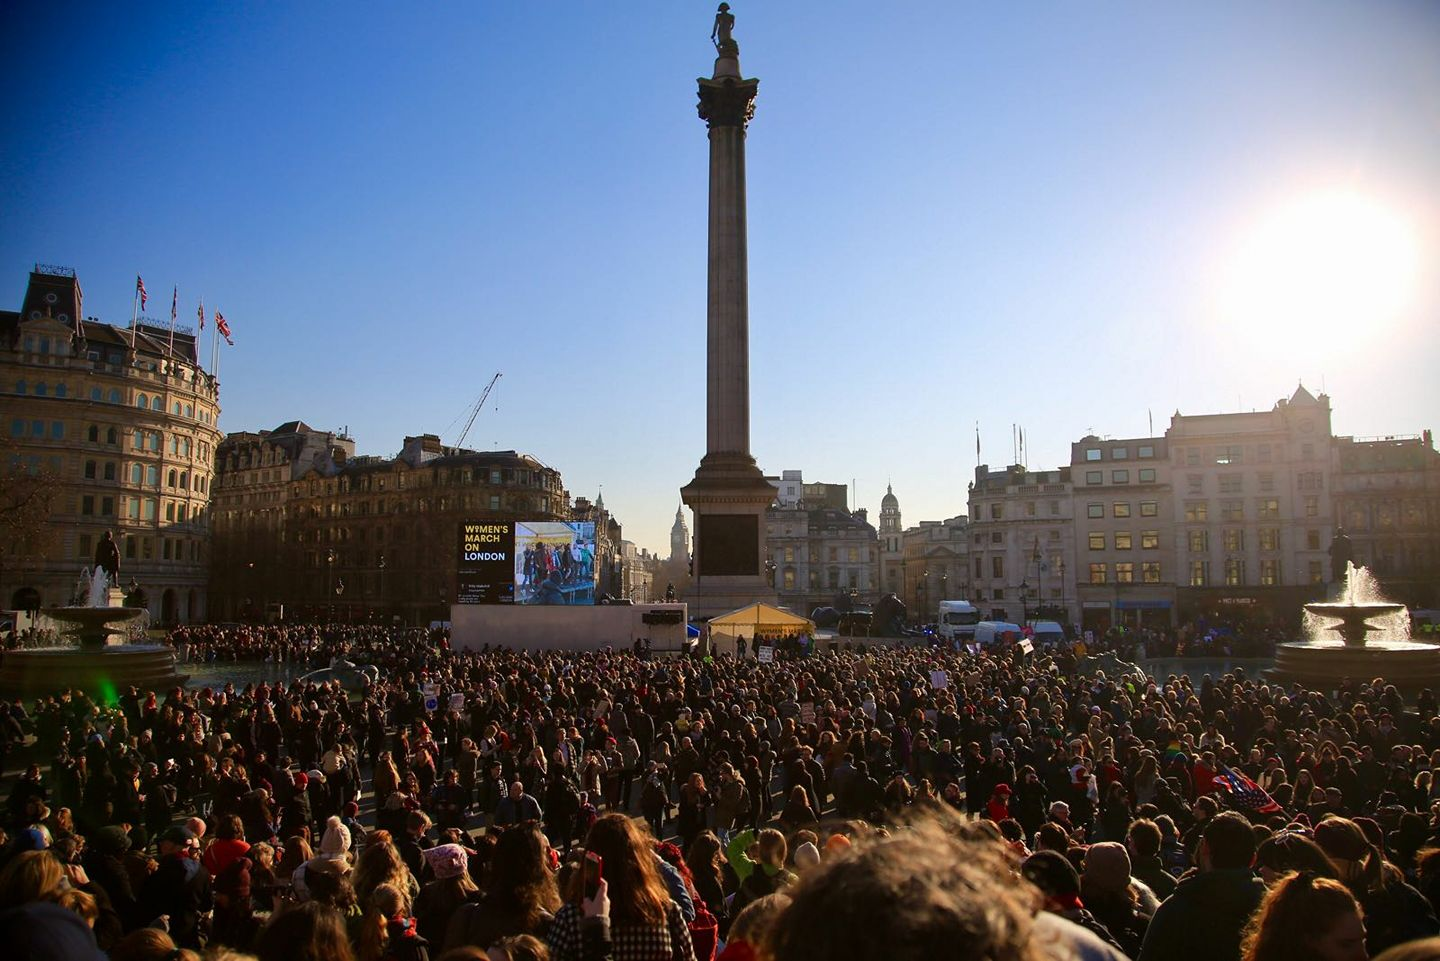 Women's March on London, Trafalgar Square, 21.01.17